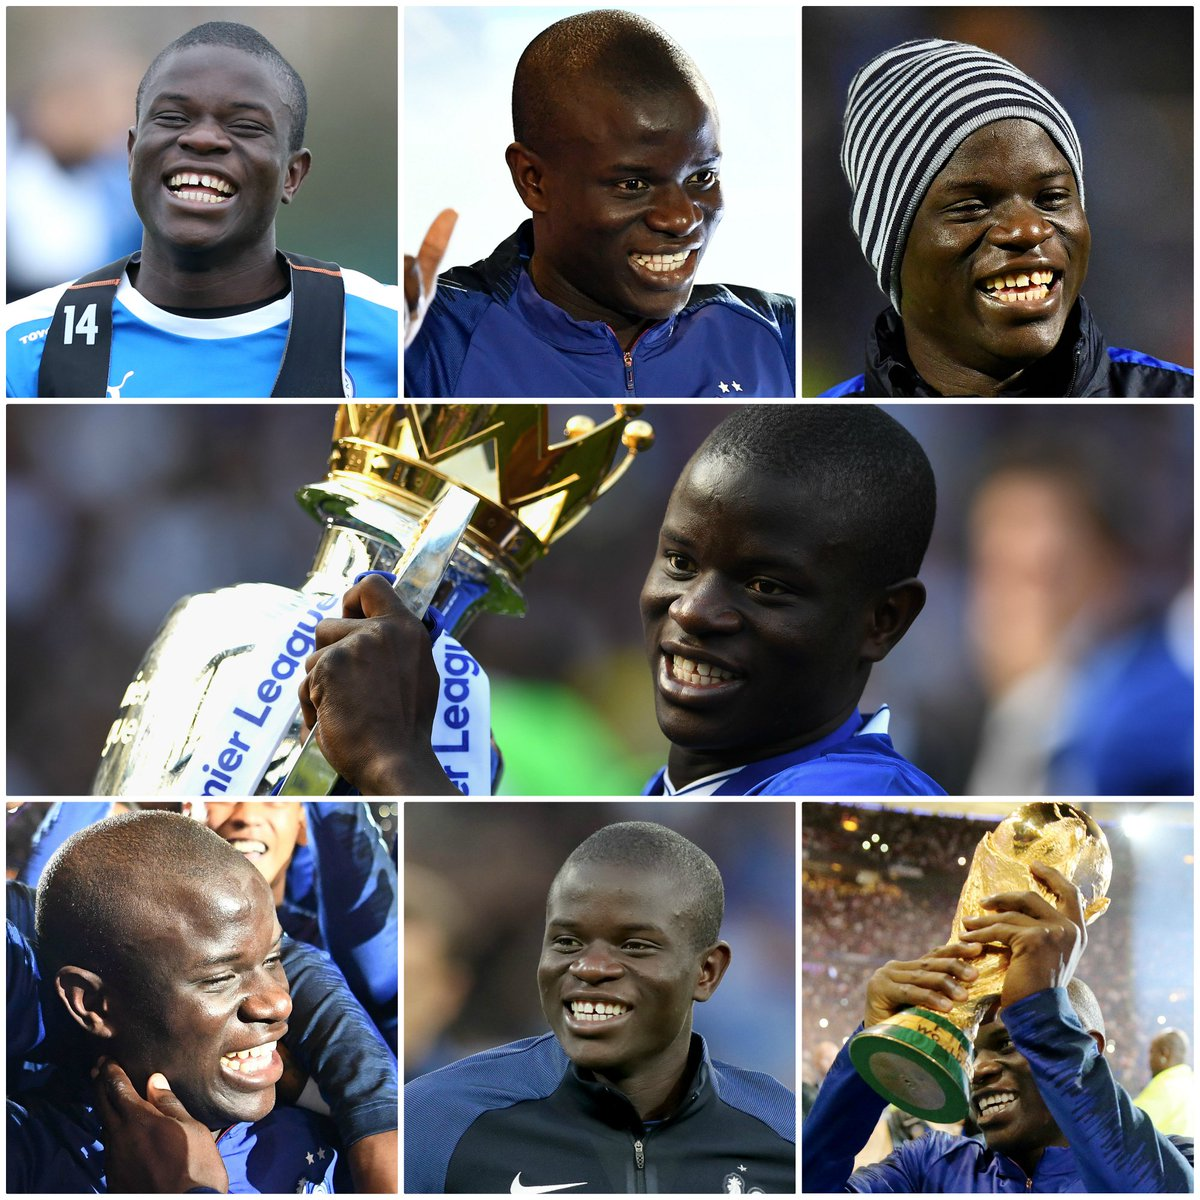 705aaaef3871c is there a bigger smile in football happy birthday nglkante